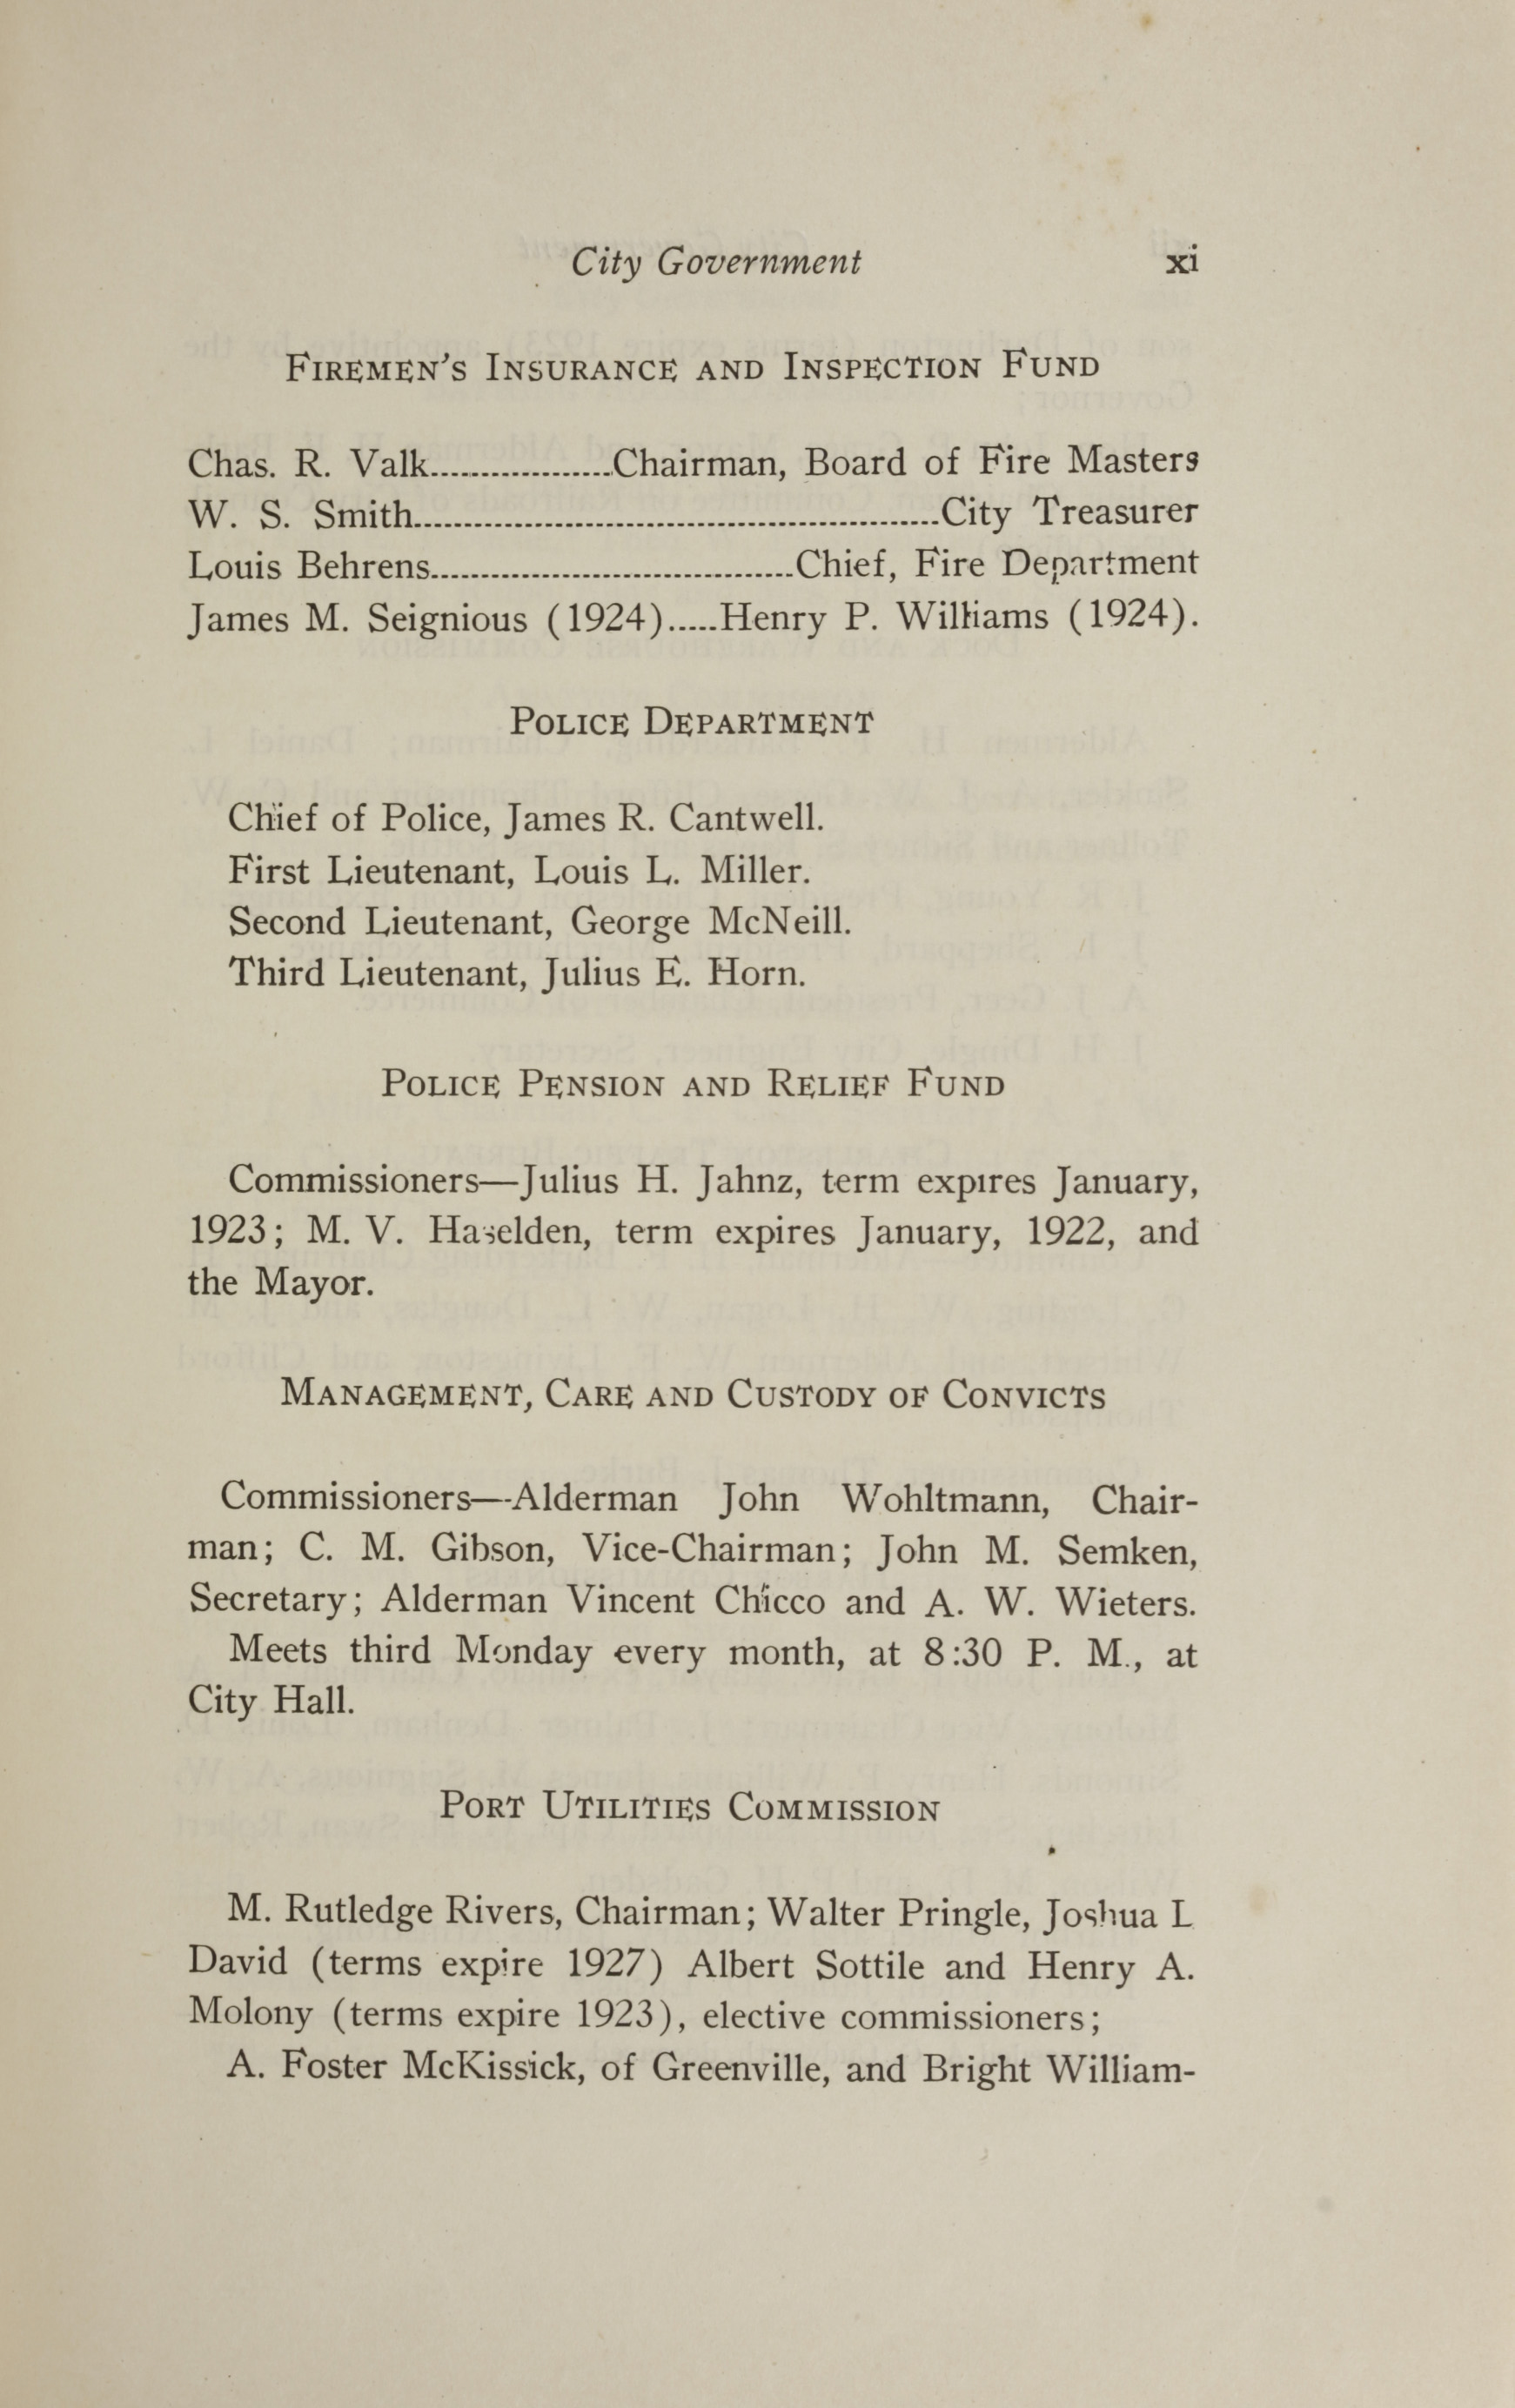 Charleston Yearbook, 1921, page xi